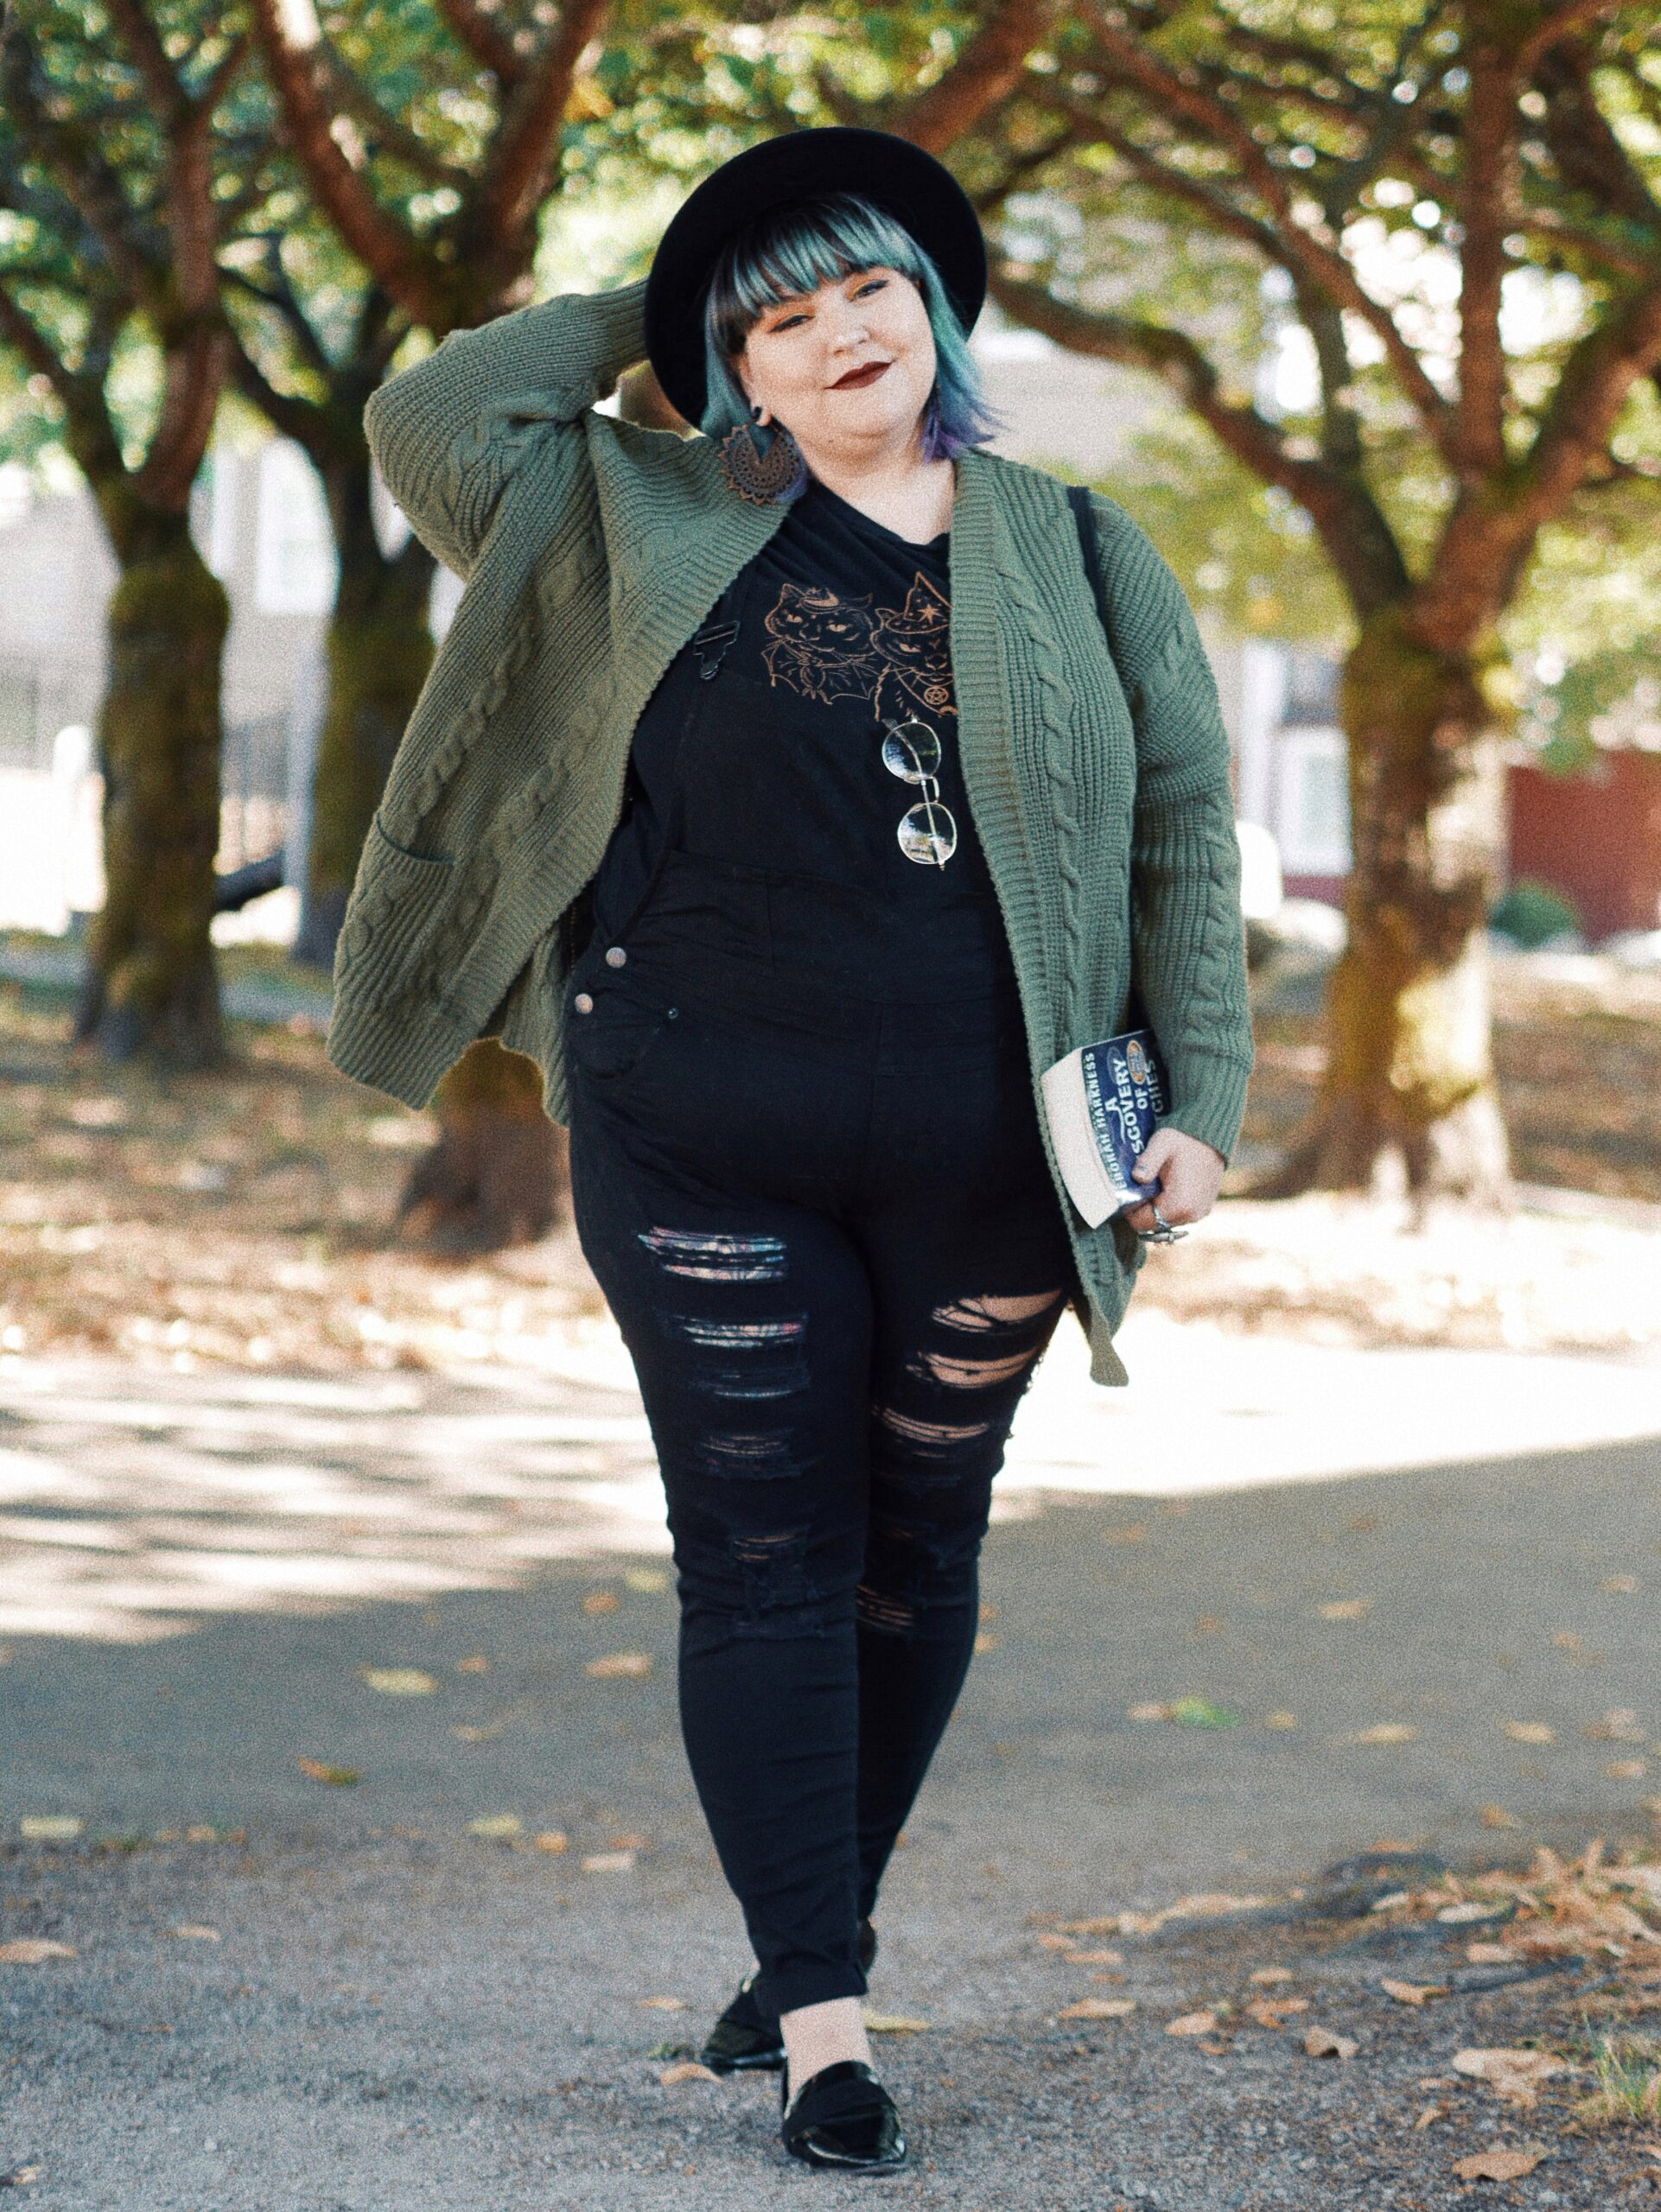 Margot Meanie poses in plus size outfit featuring a green sweater and black ripped overalls